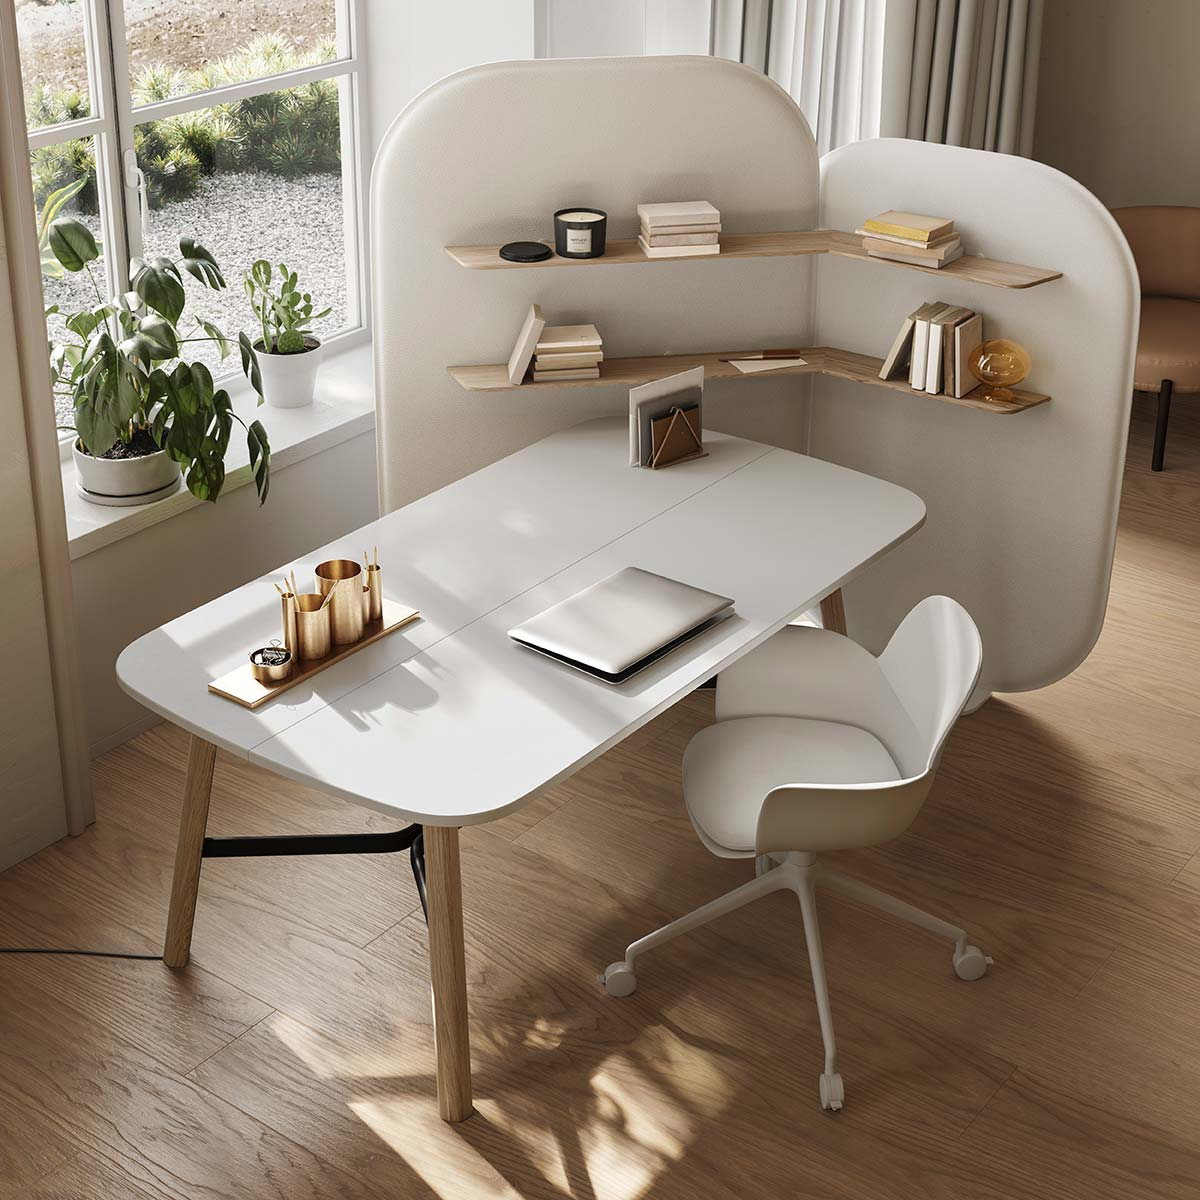 Poly collection by Natuzzi, Design by Patrick Norguet